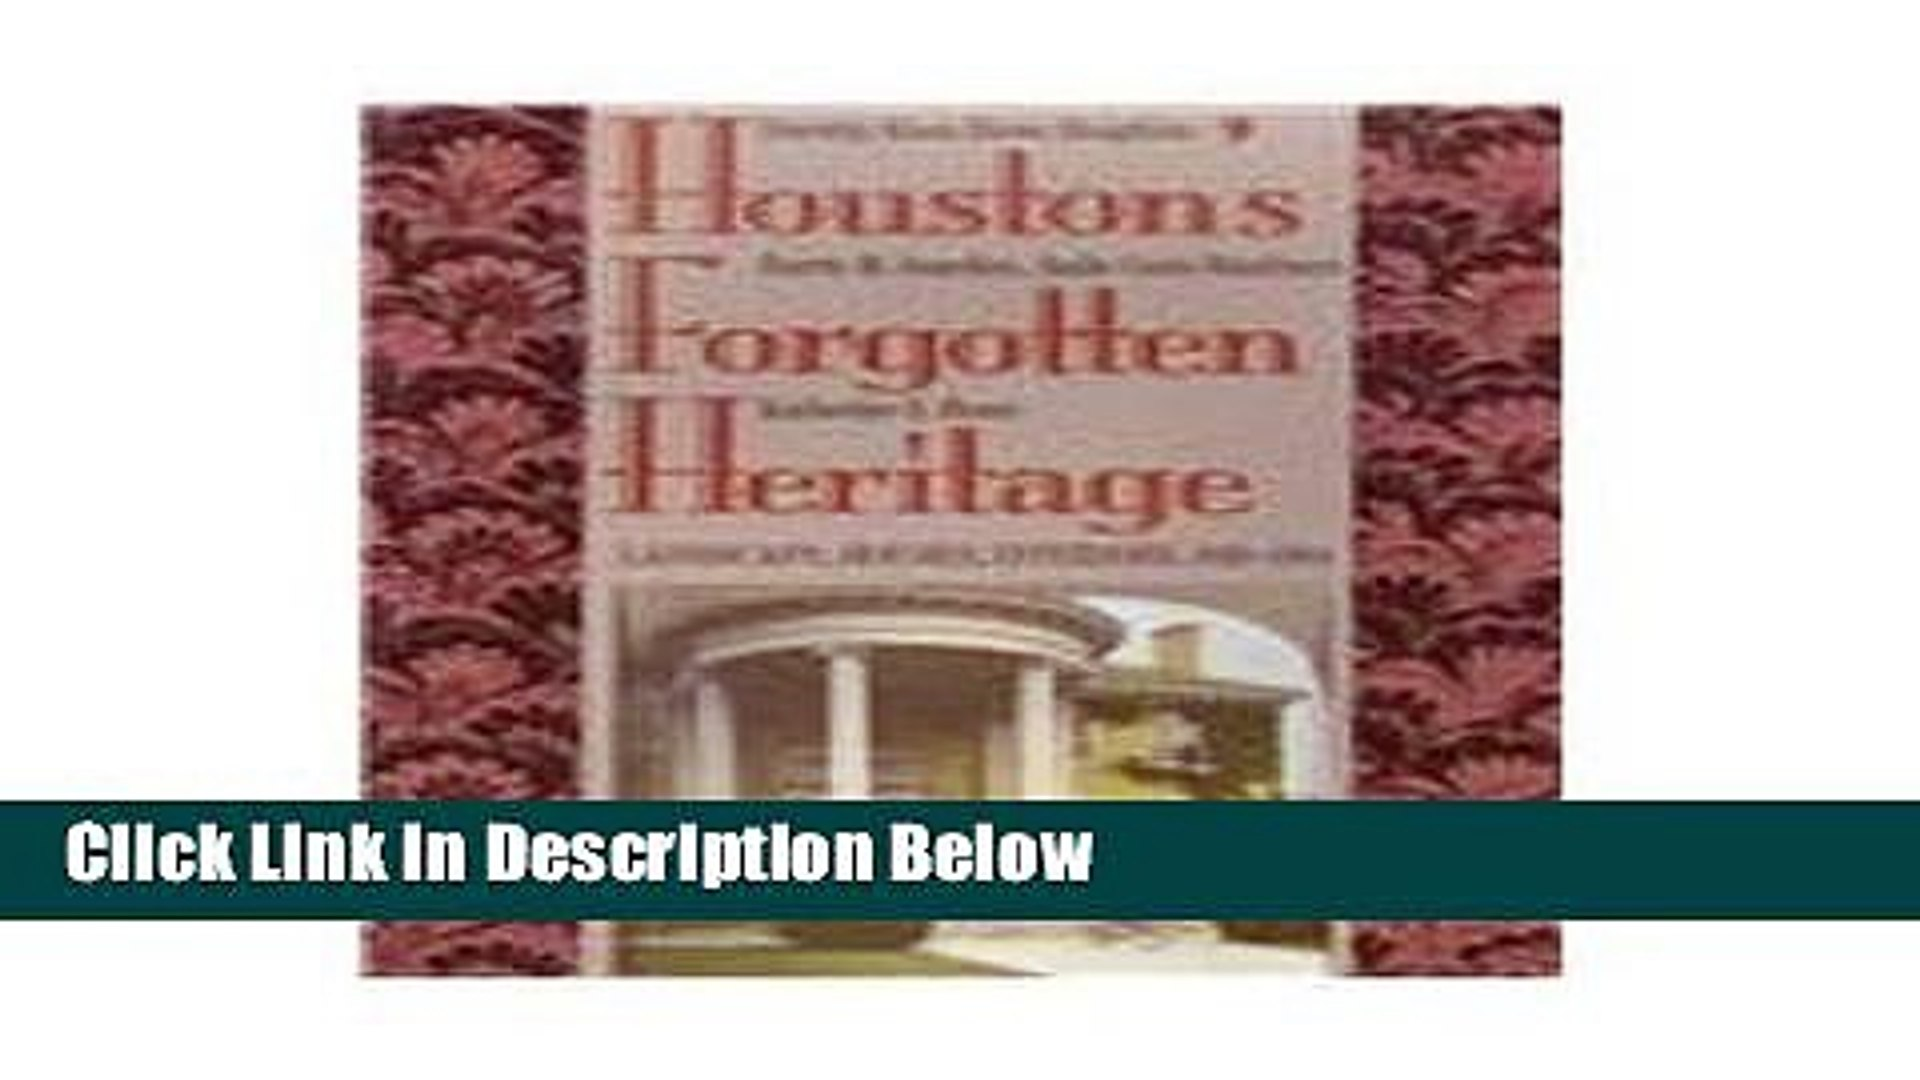 Books Houston s Forgotten Heritage: Landscape, Houses, Interiors, 1824-1914 (Sara and John Lindsey